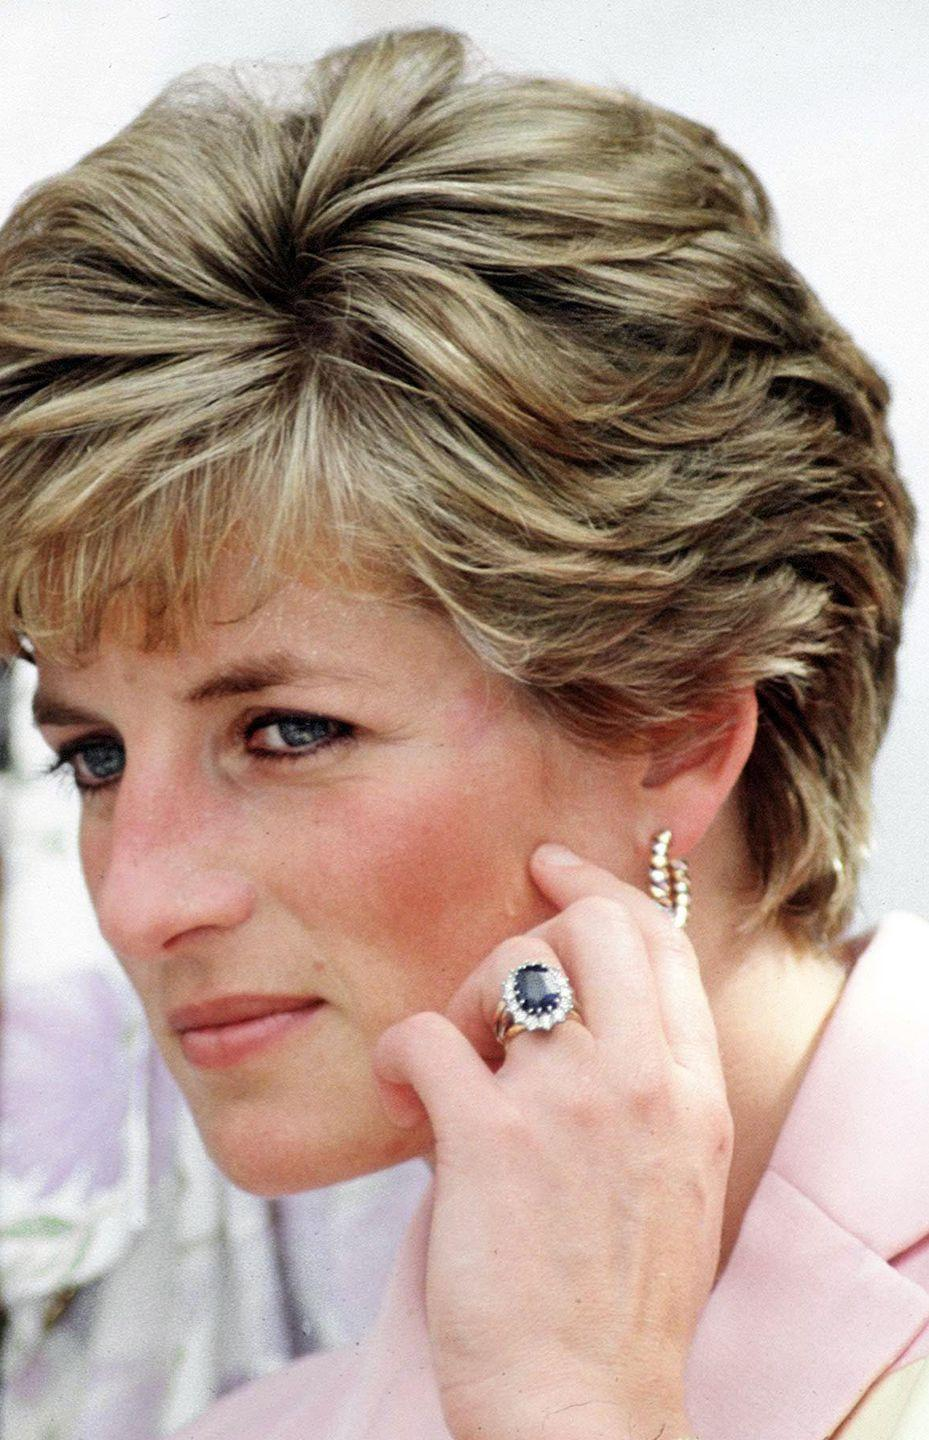 "<p>Although royal engagement rings are usually custom made, the 19-year-old bride selected hers from the <a href=""http://garrard.com/"" rel=""nofollow noopener"" target=""_blank"" data-ylk=""slk:Garrard"" class=""link rapid-noclick-resp"">Garrard</a> jewelry collection catalog. Now <a href=""http://www.today.com/id/40217151/ns/today-today_news/t/untold-stories-behind-kates--carat-sapphire/#.Vg7hFGTF_Yl"" rel=""nofollow noopener"" target=""_blank"" data-ylk=""slk:Duchess Kate Middleton wears"" class=""link rapid-noclick-resp"">Duchess Kate Middleton wears</a> the ring, made of 14 solitaire diamonds around a12-carat sapphire set in white gold.<br></p>"